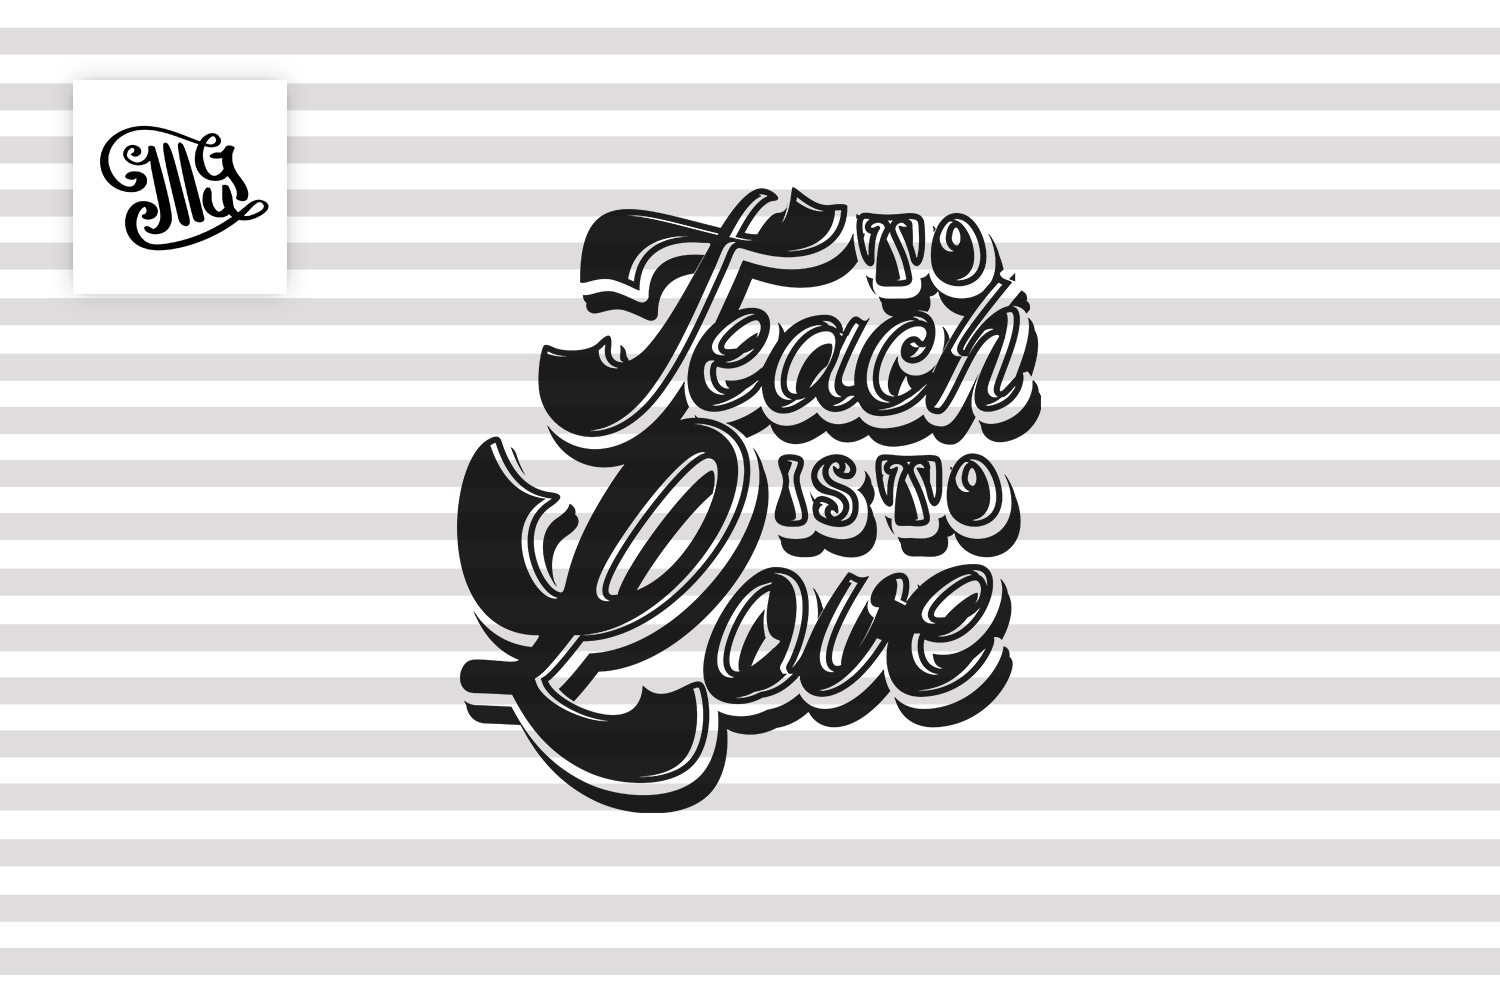 To teach is to love svg for teacher Valentines day example image 2